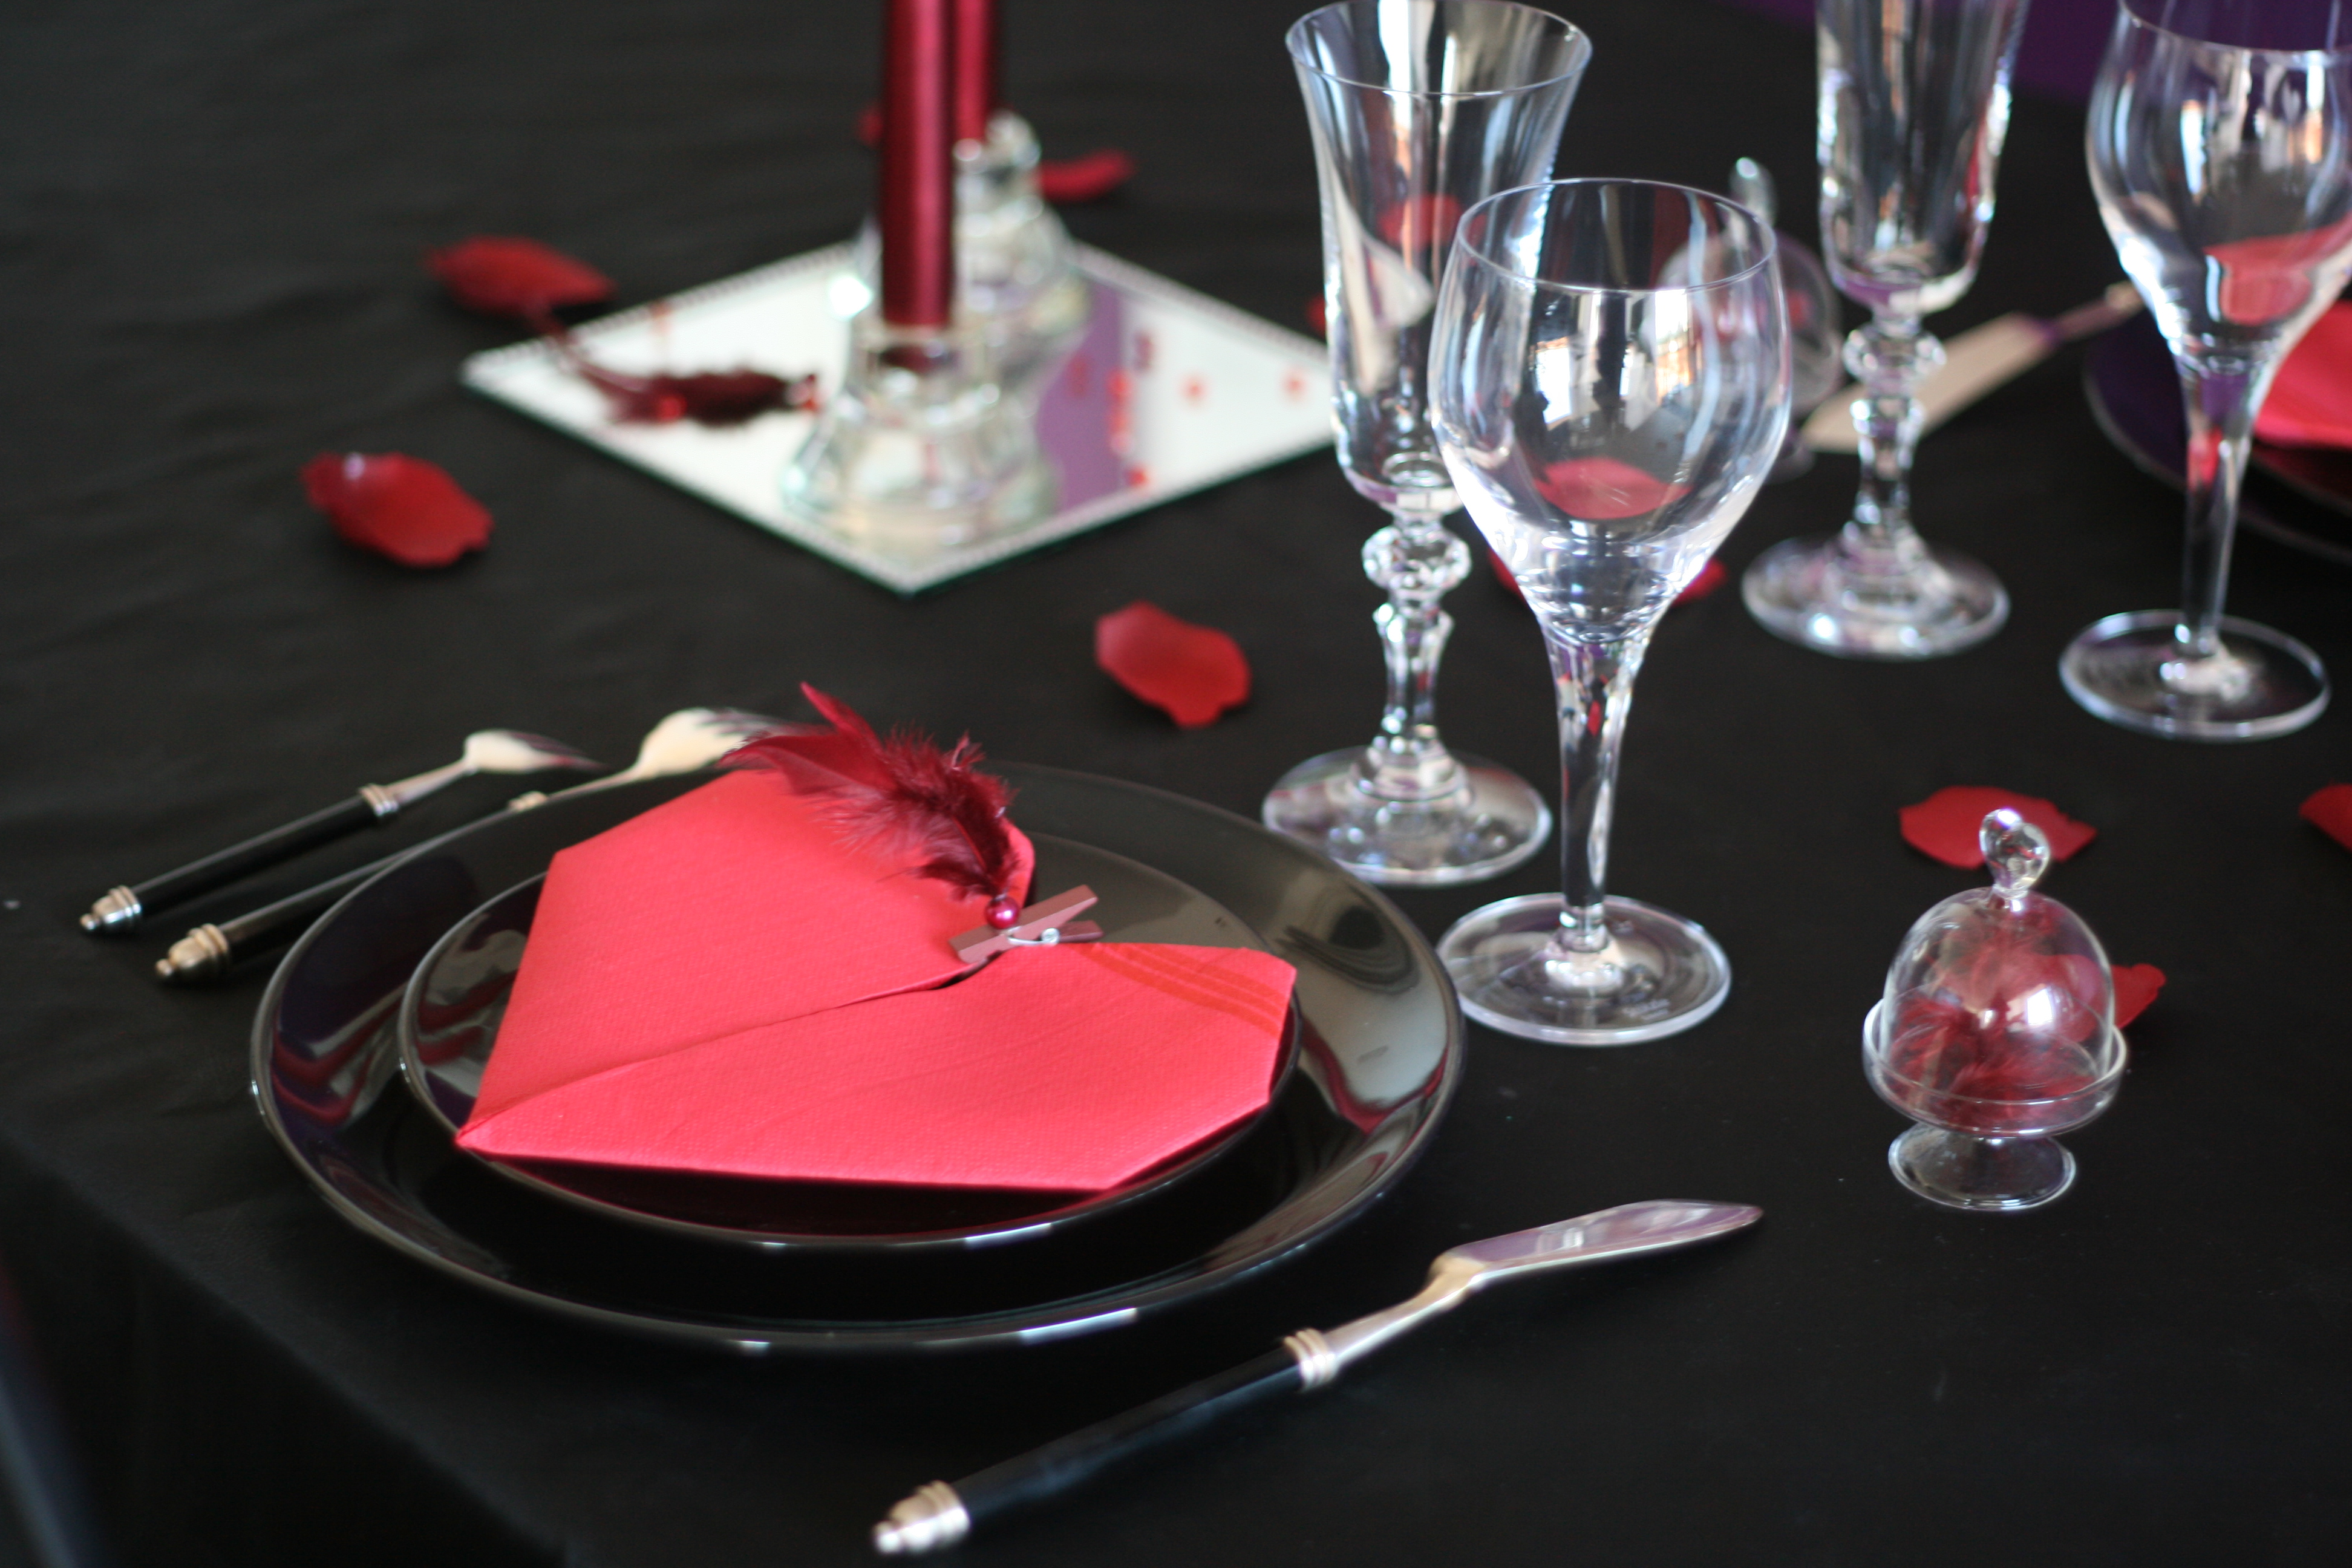 Table Saint Valentin dedans la saint valentin : 5 versions - tables festives